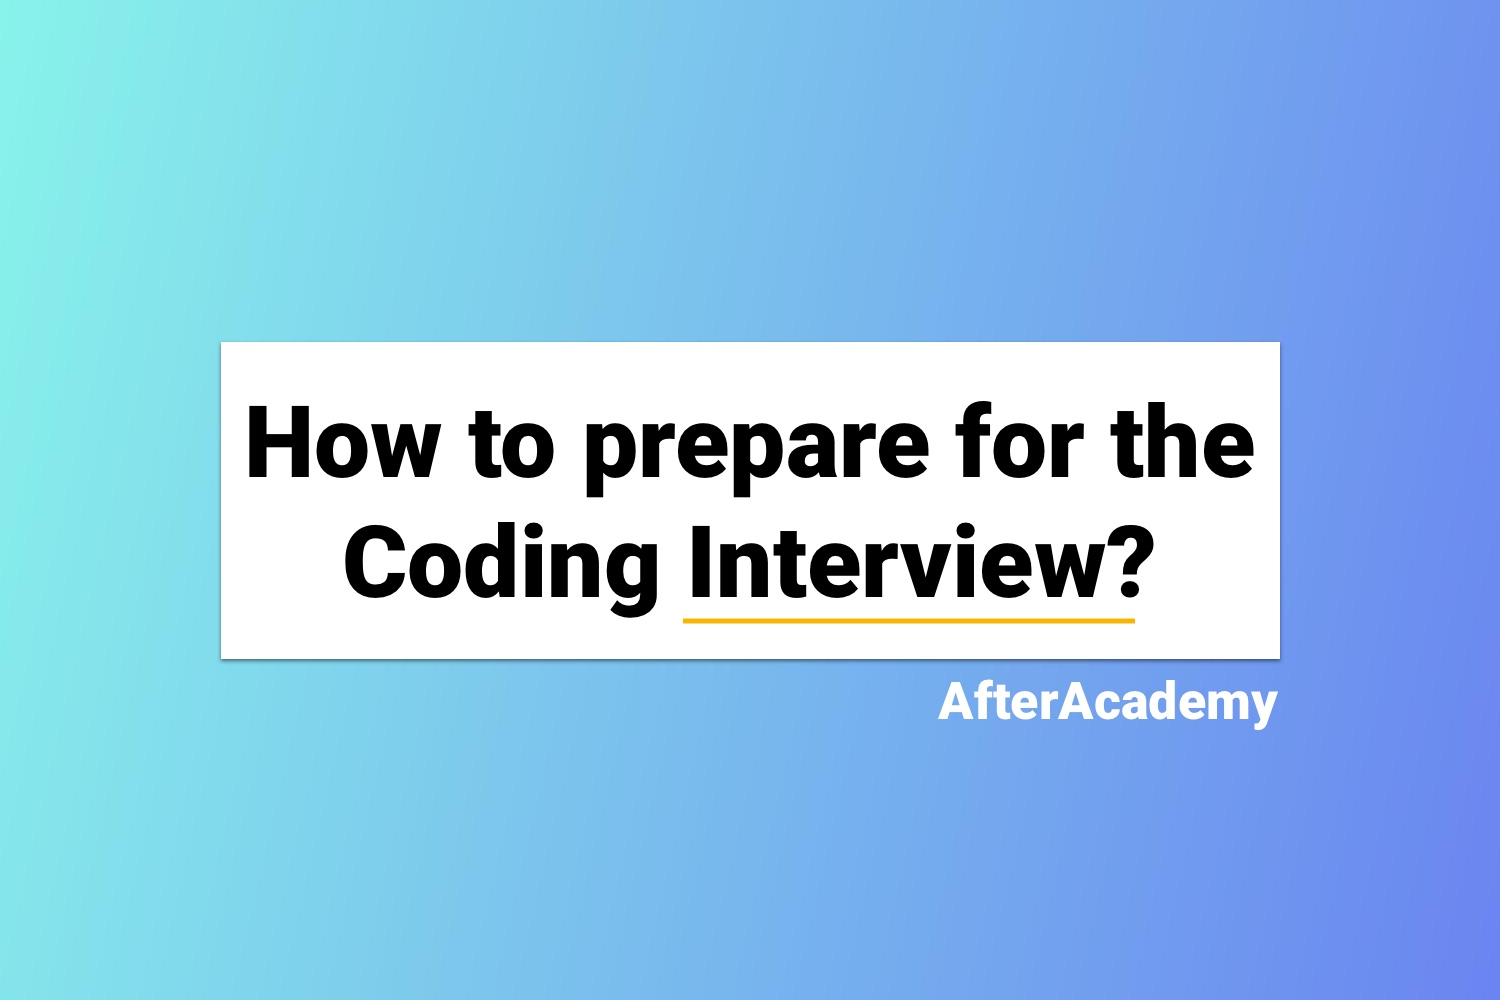 How to prepare for the Coding Interview?